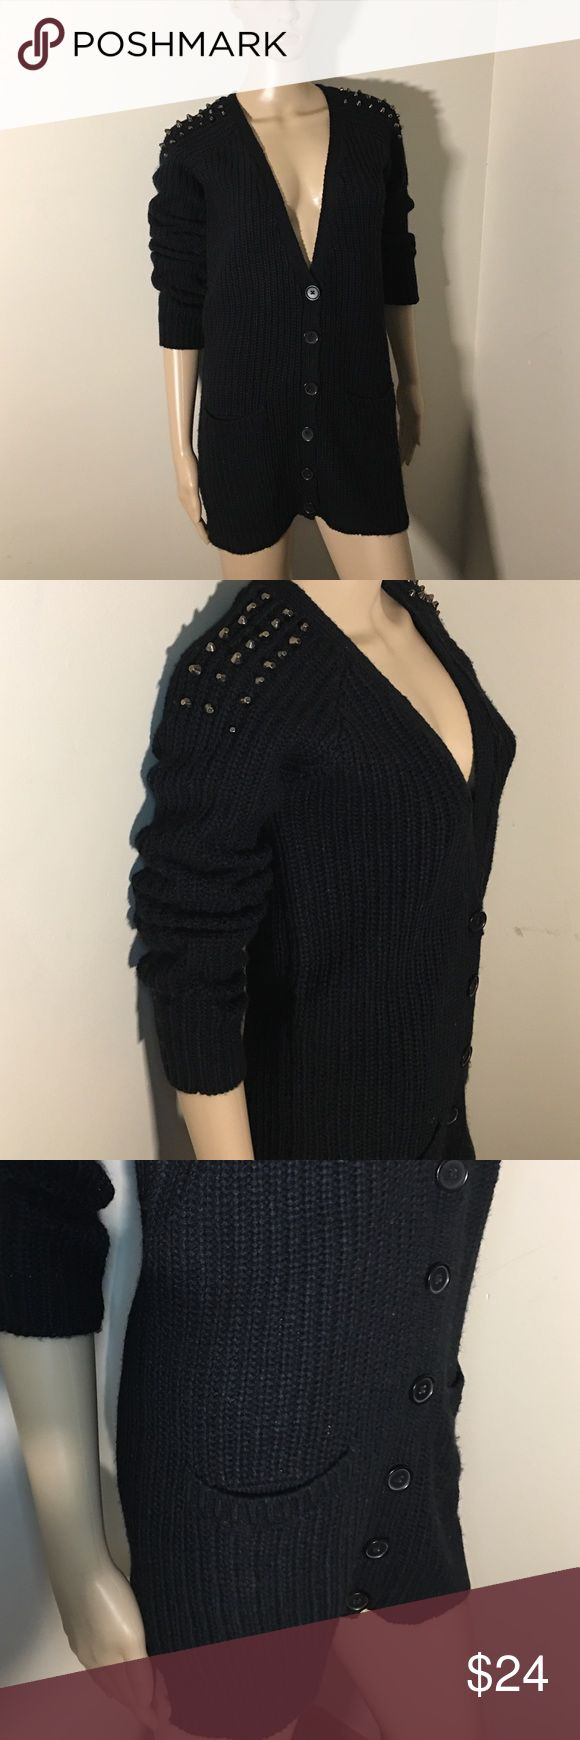 LUXE  Black Knit Cardigan Size S NWT Acrylic,machine washable . Luxe Jackets & Coats